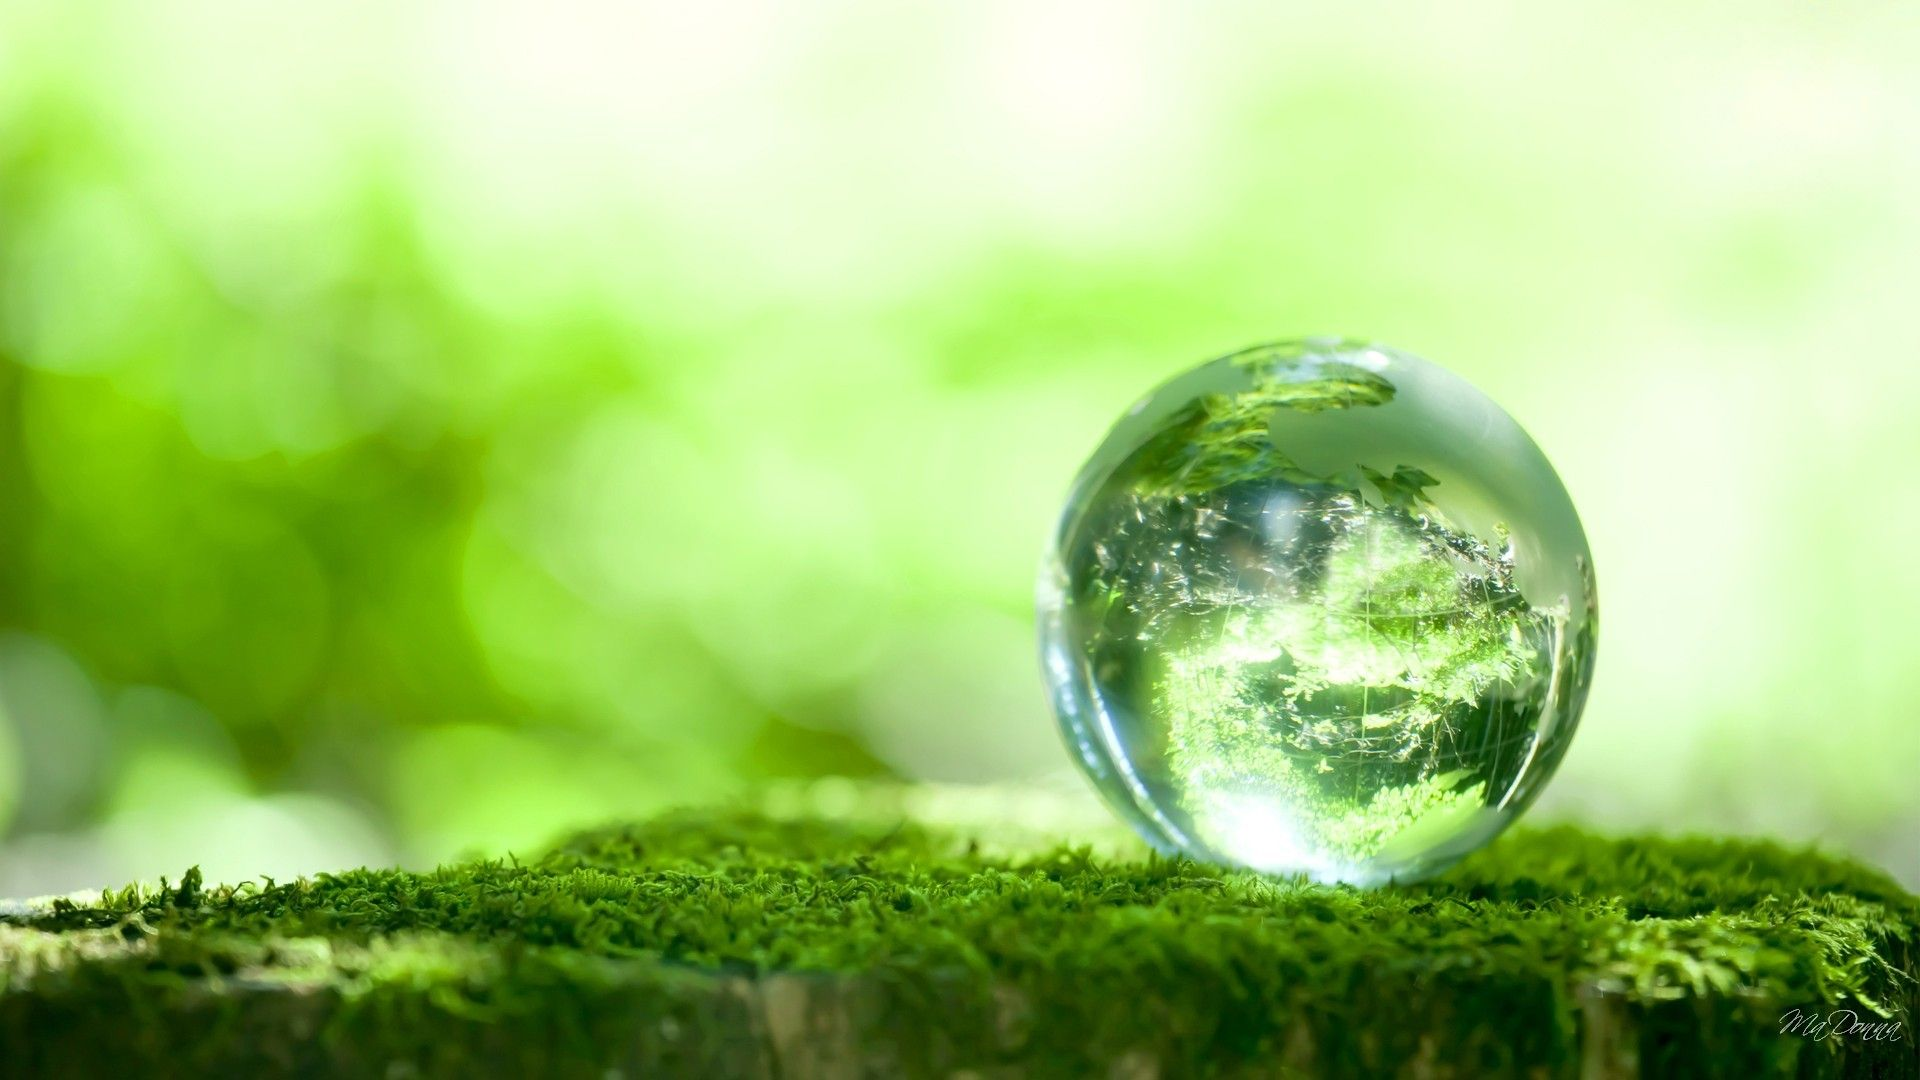 Cluster-Têxtil-Conference | Brokerage Event Green Growth and Circular Economy Thinking